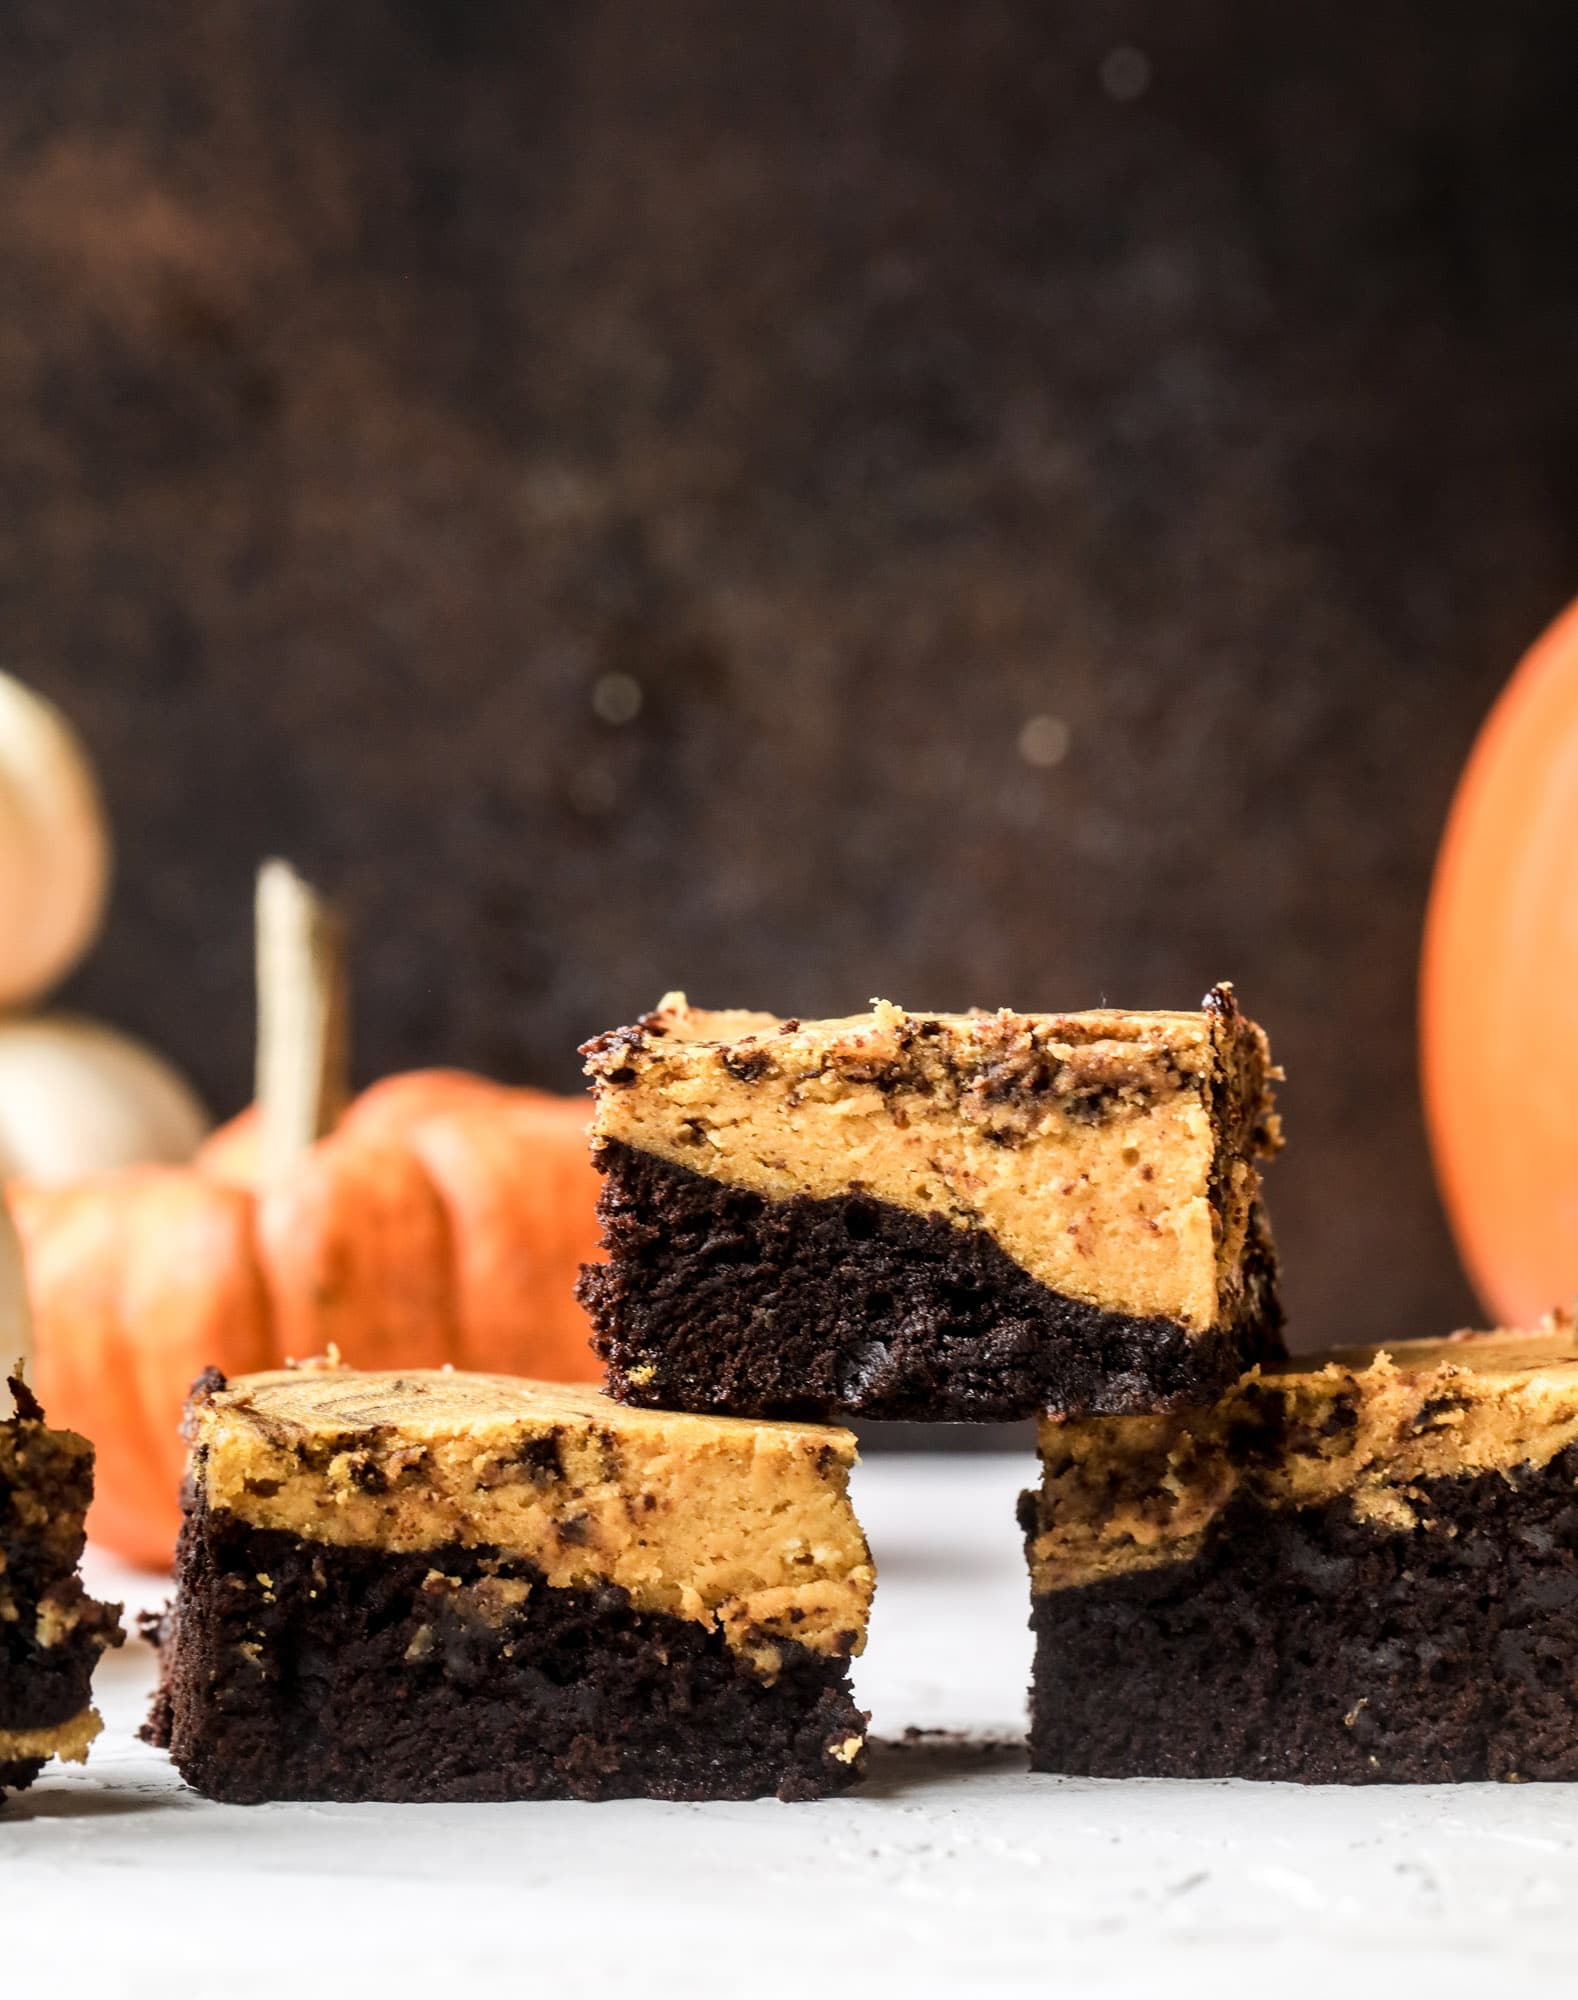 These pumpkin brownies have a fudgy layer of chocolate on the bottom and a silky layer of pumpkin on top! They are so delicious and rich and perfect for fall. The pumpkin brownies come together easily and can be made ahead of time too! I howsweeteats.com #pumpkin #brownies